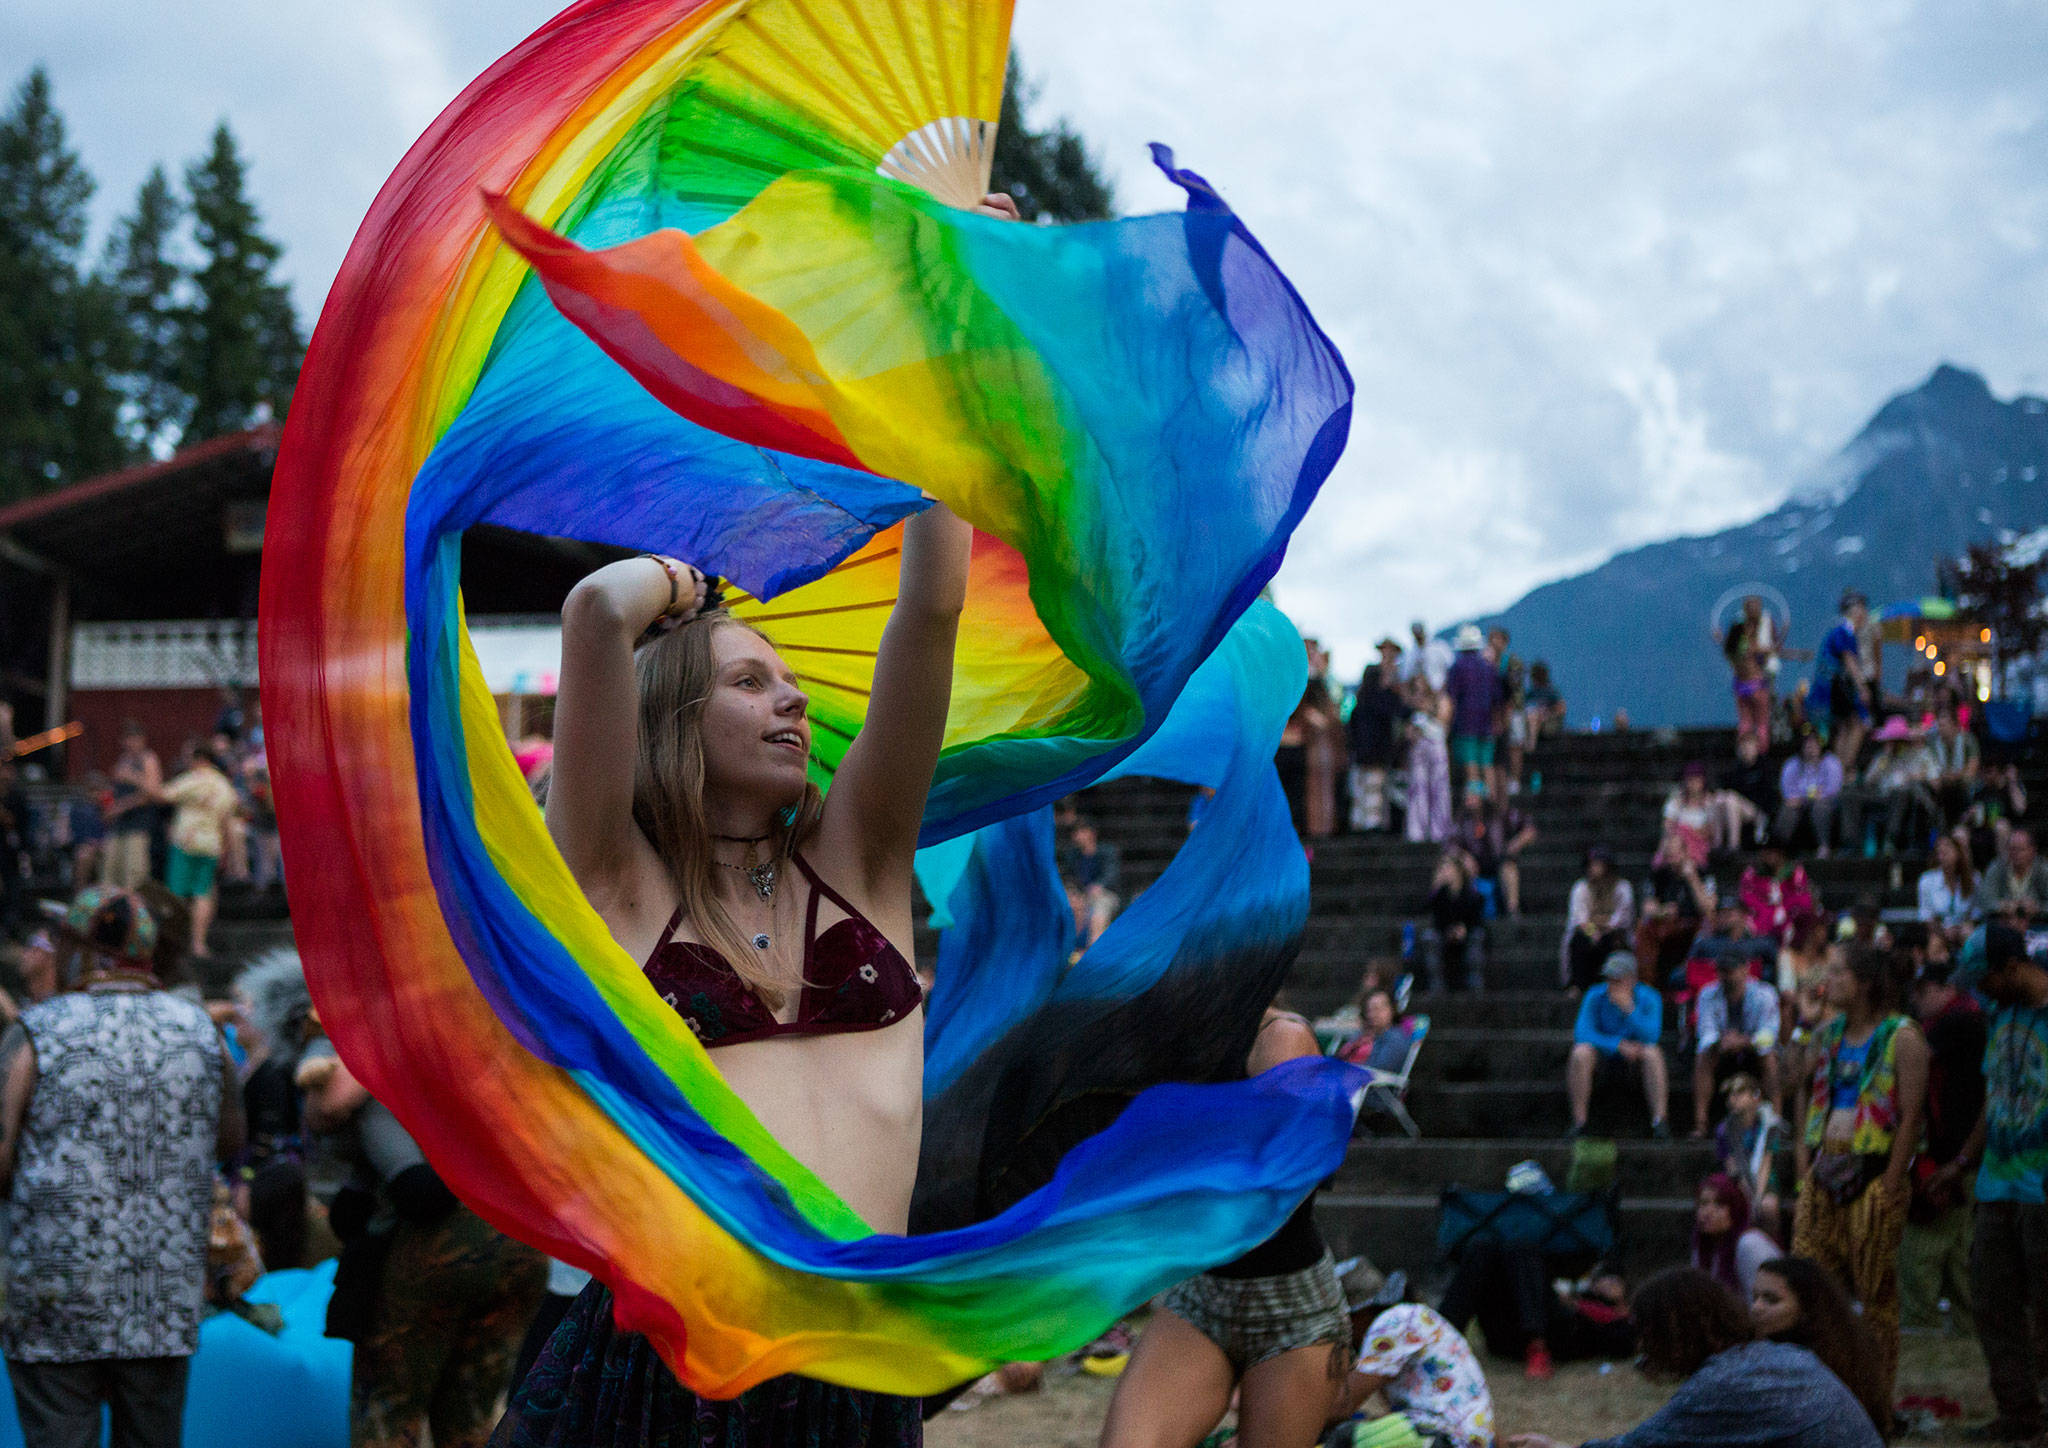 Mya Hossack dances with rainbow fans during Umphrey's McGee during the second day of Summer Meltdown on Friday, Aug. 2, 2019 in Darrington, Wash. (Olivia Vanni / The Herald)